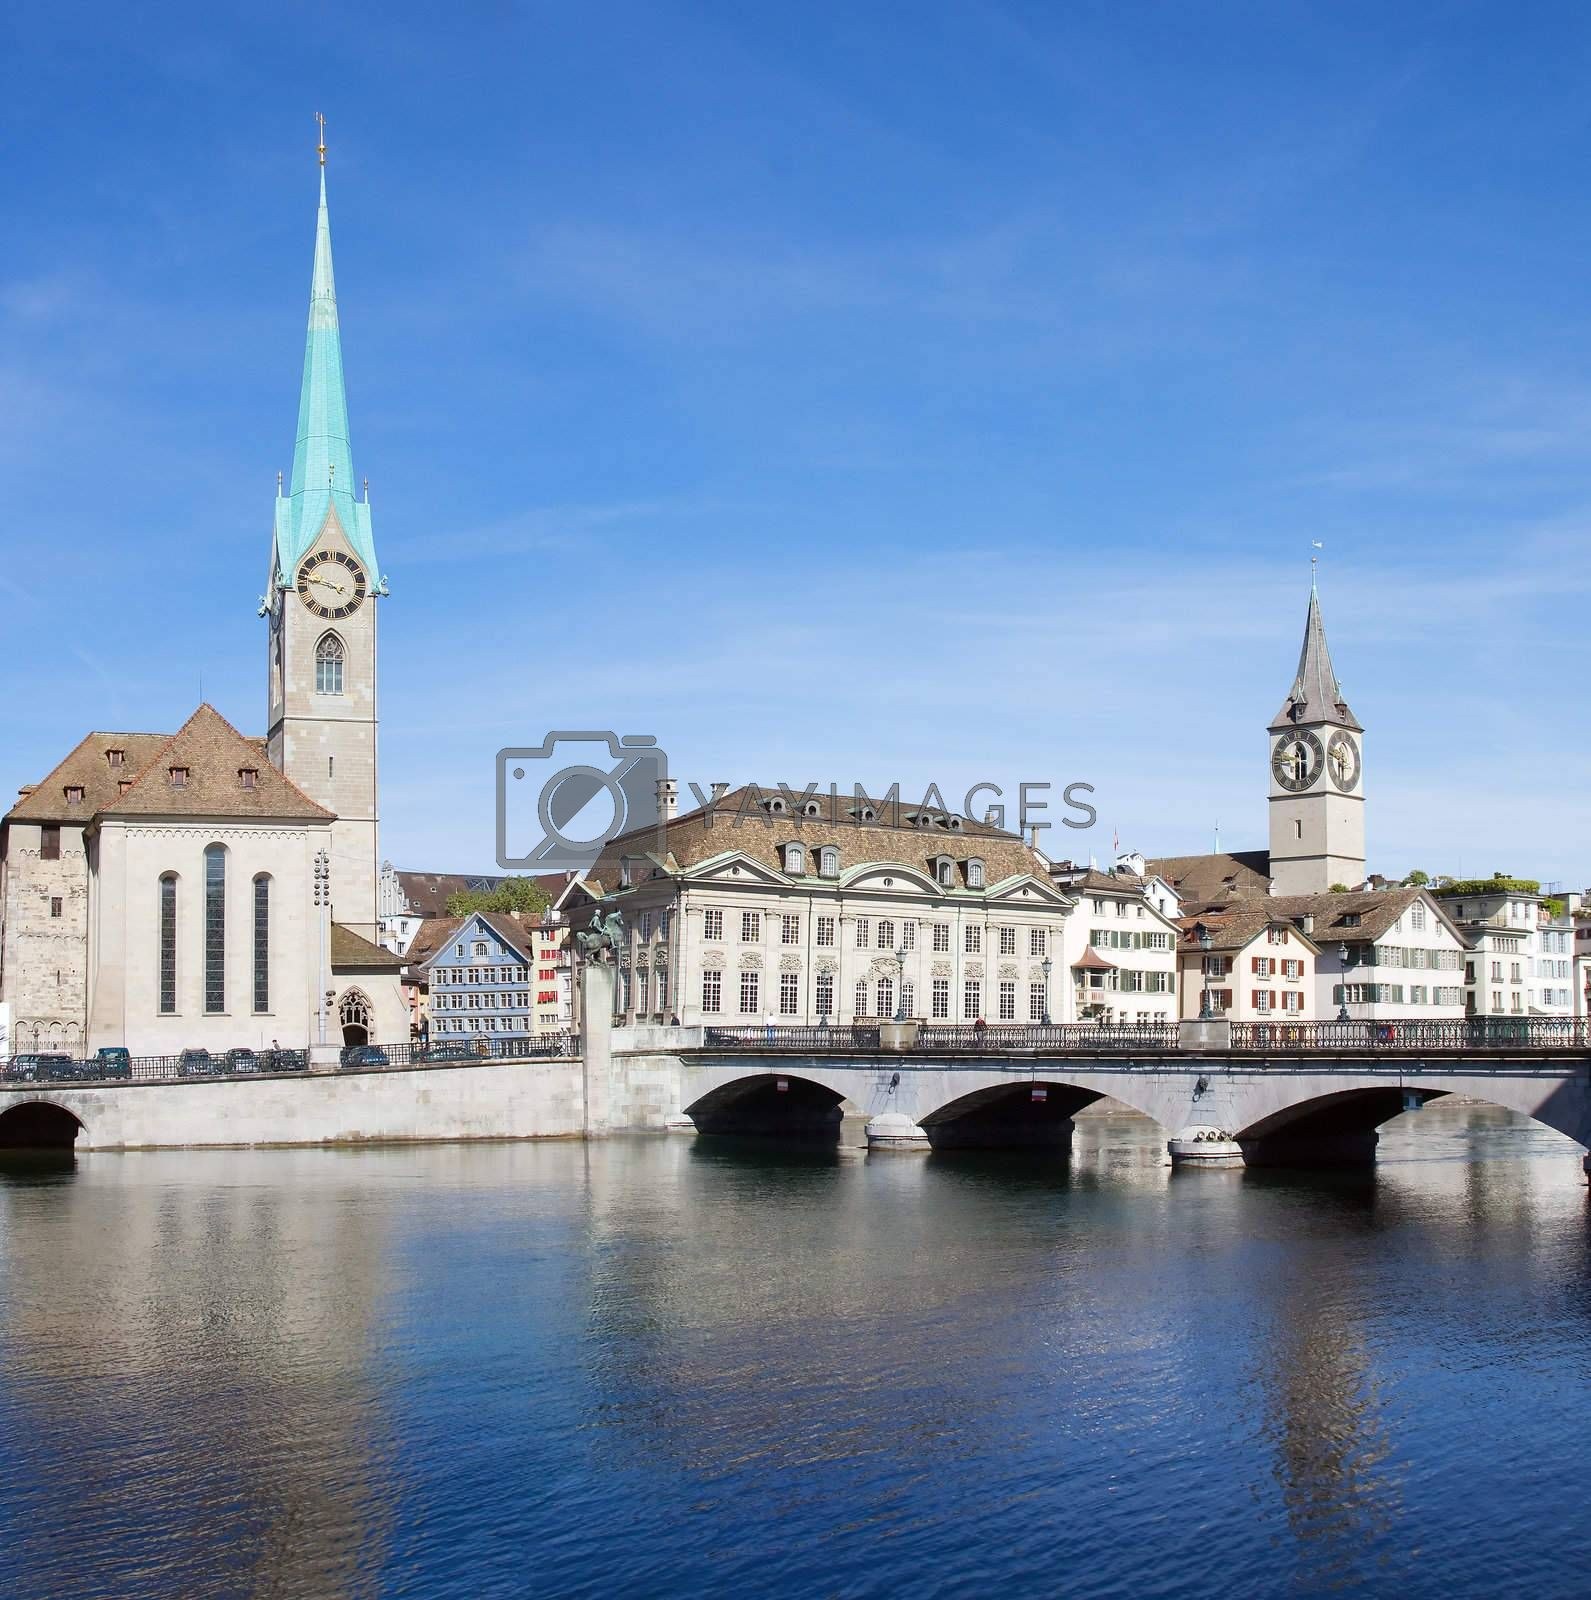 Zurich cityscape (Famous Fraumuenster Cathedral and St.Peter Church)